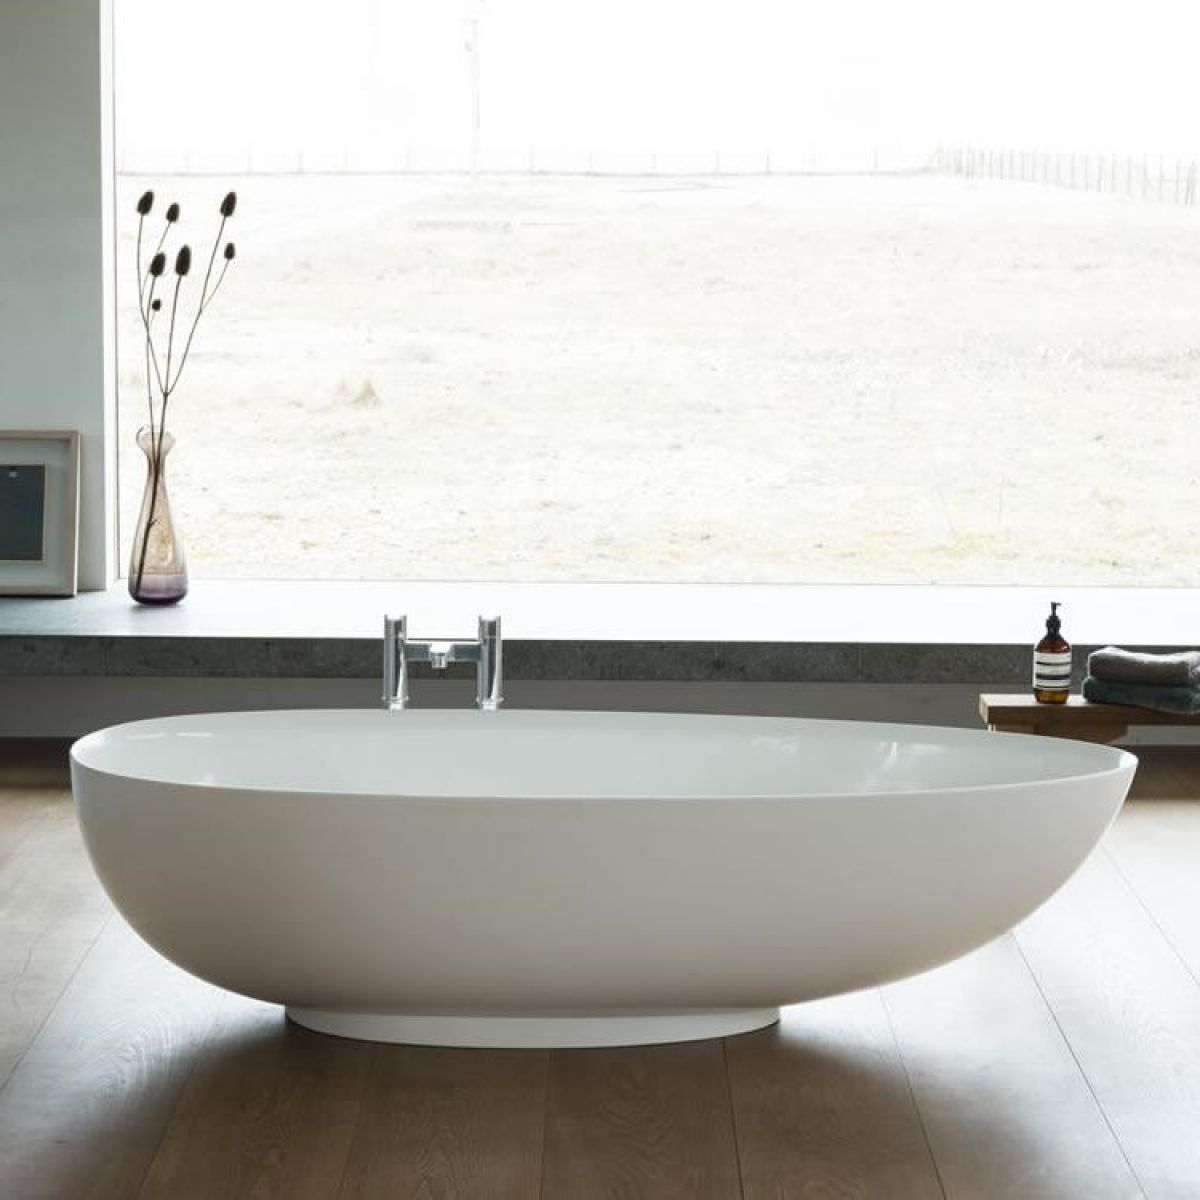 Clearwater teardrop petite clearstone bath uk bathrooms for Small baths 1200